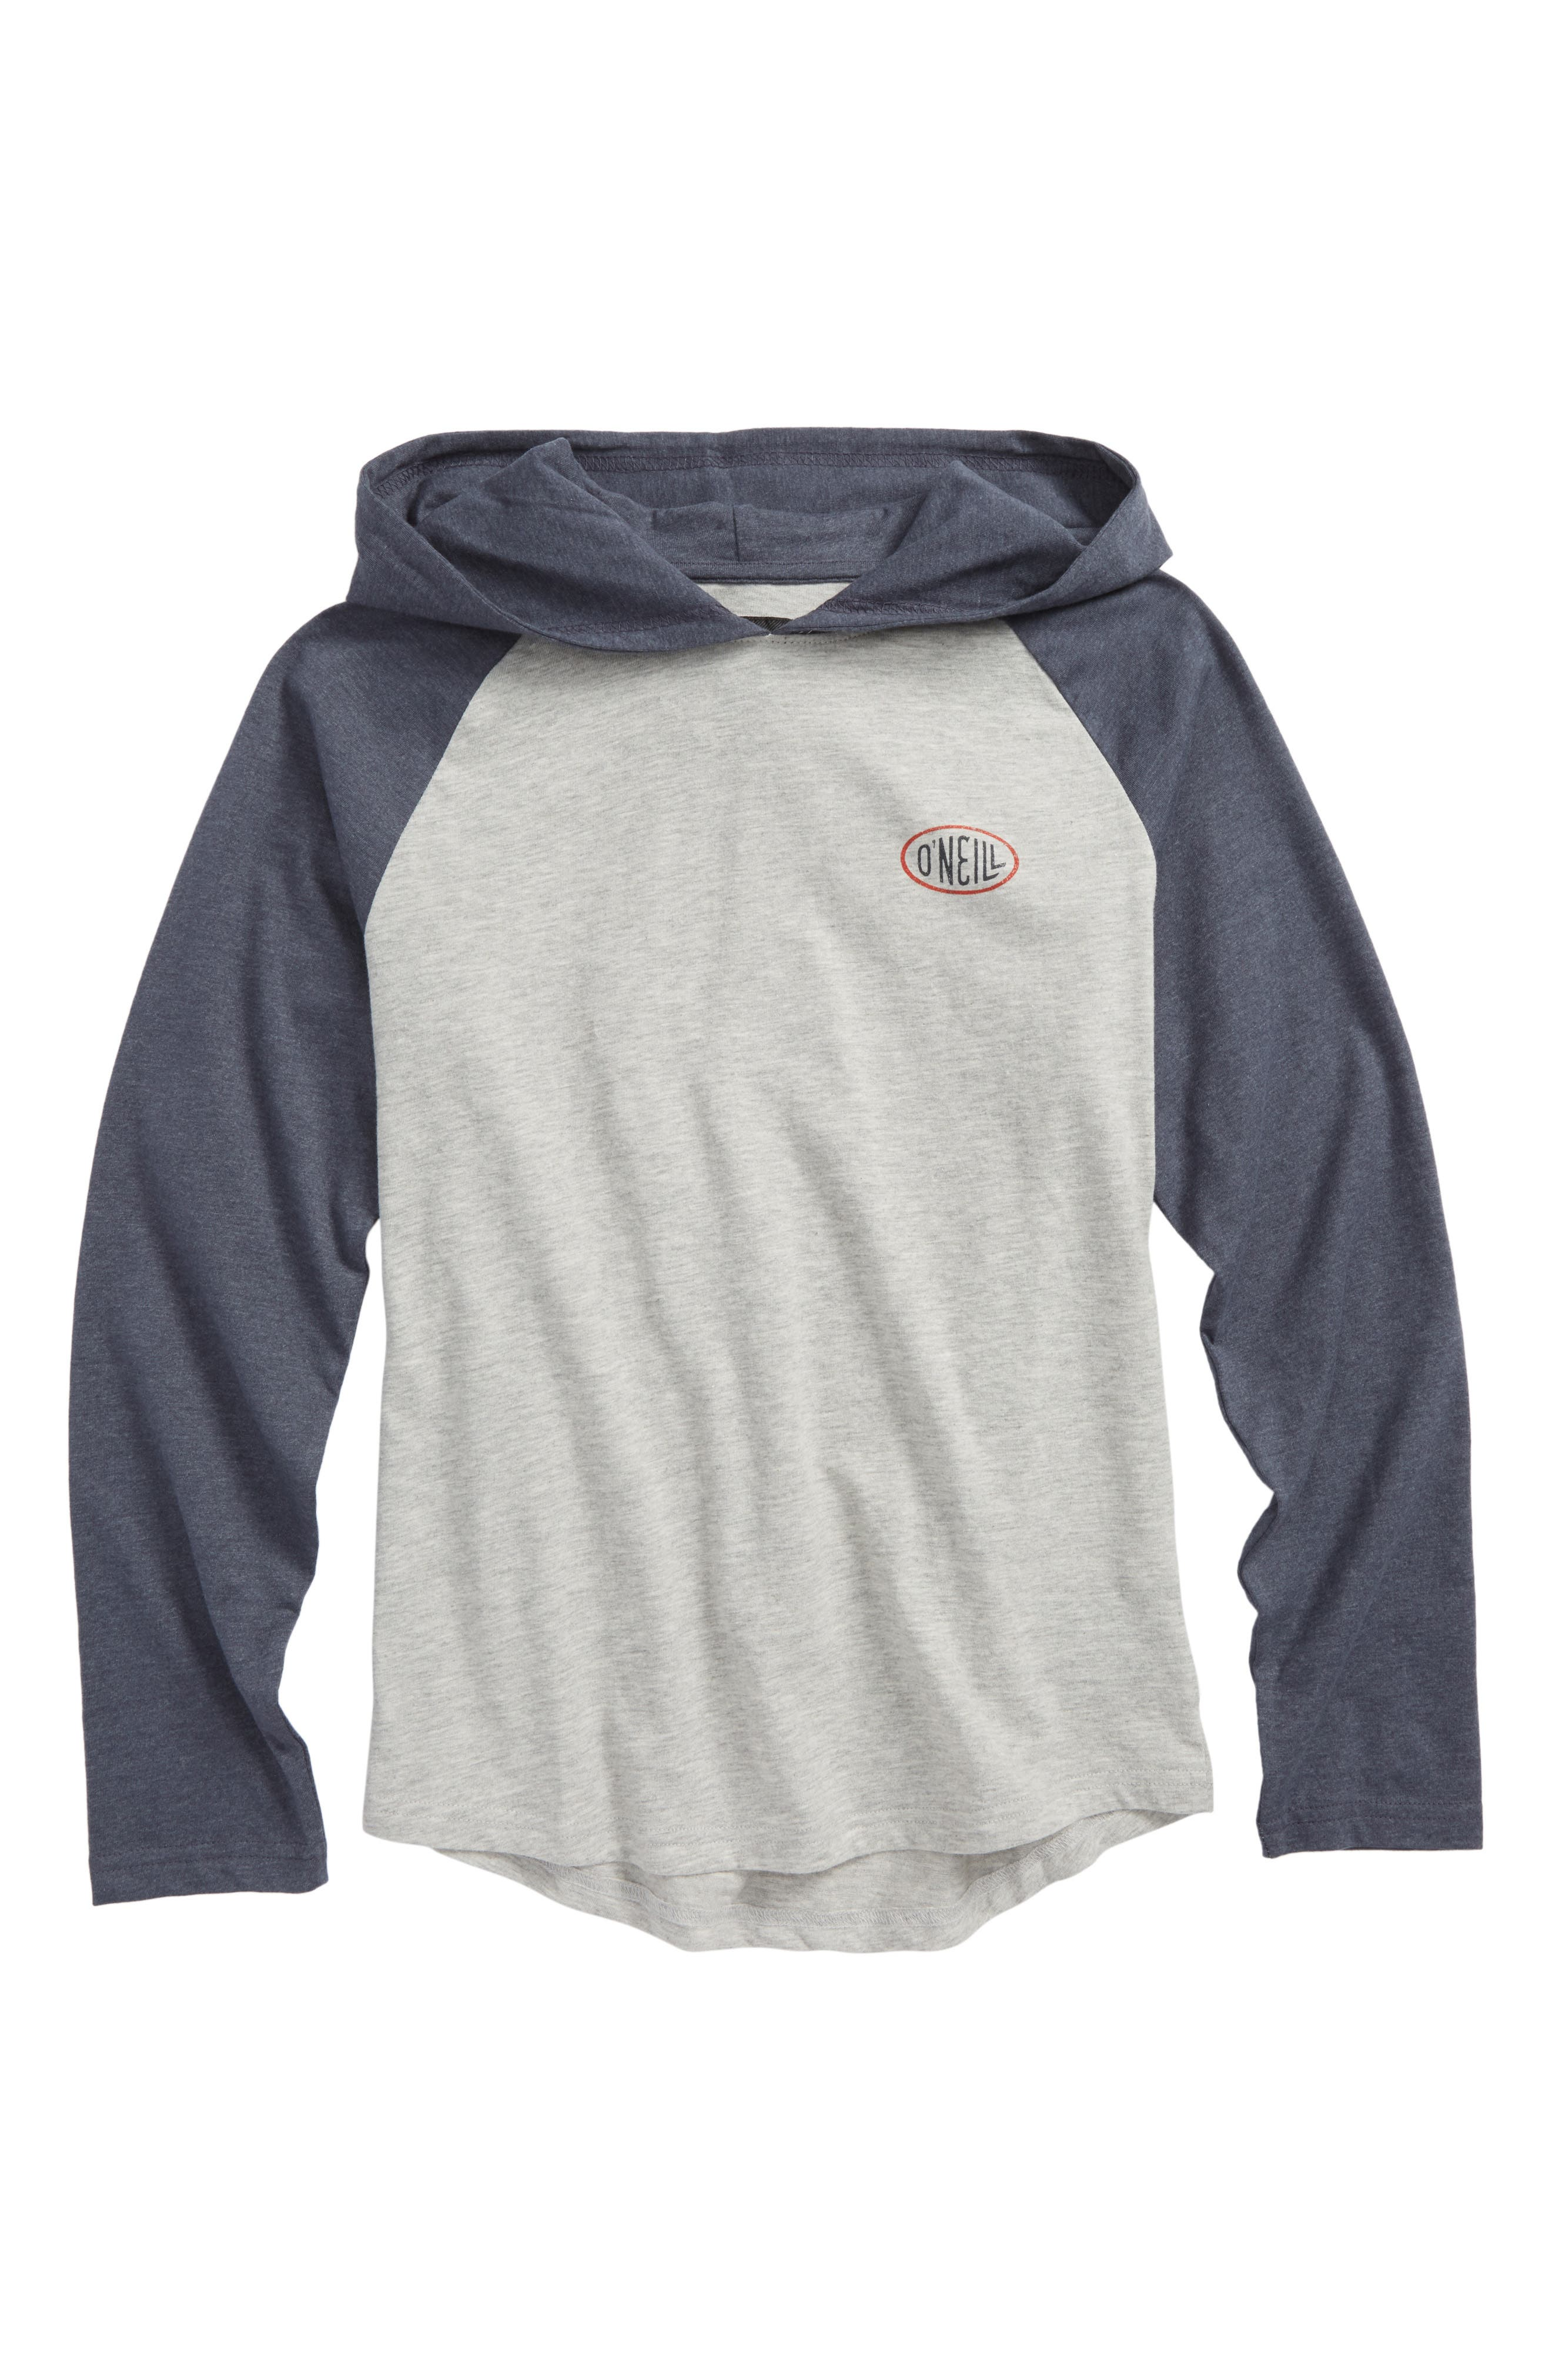 Malcom Logo Graphic Pullover Hoodie,                             Main thumbnail 1, color,                             Slate